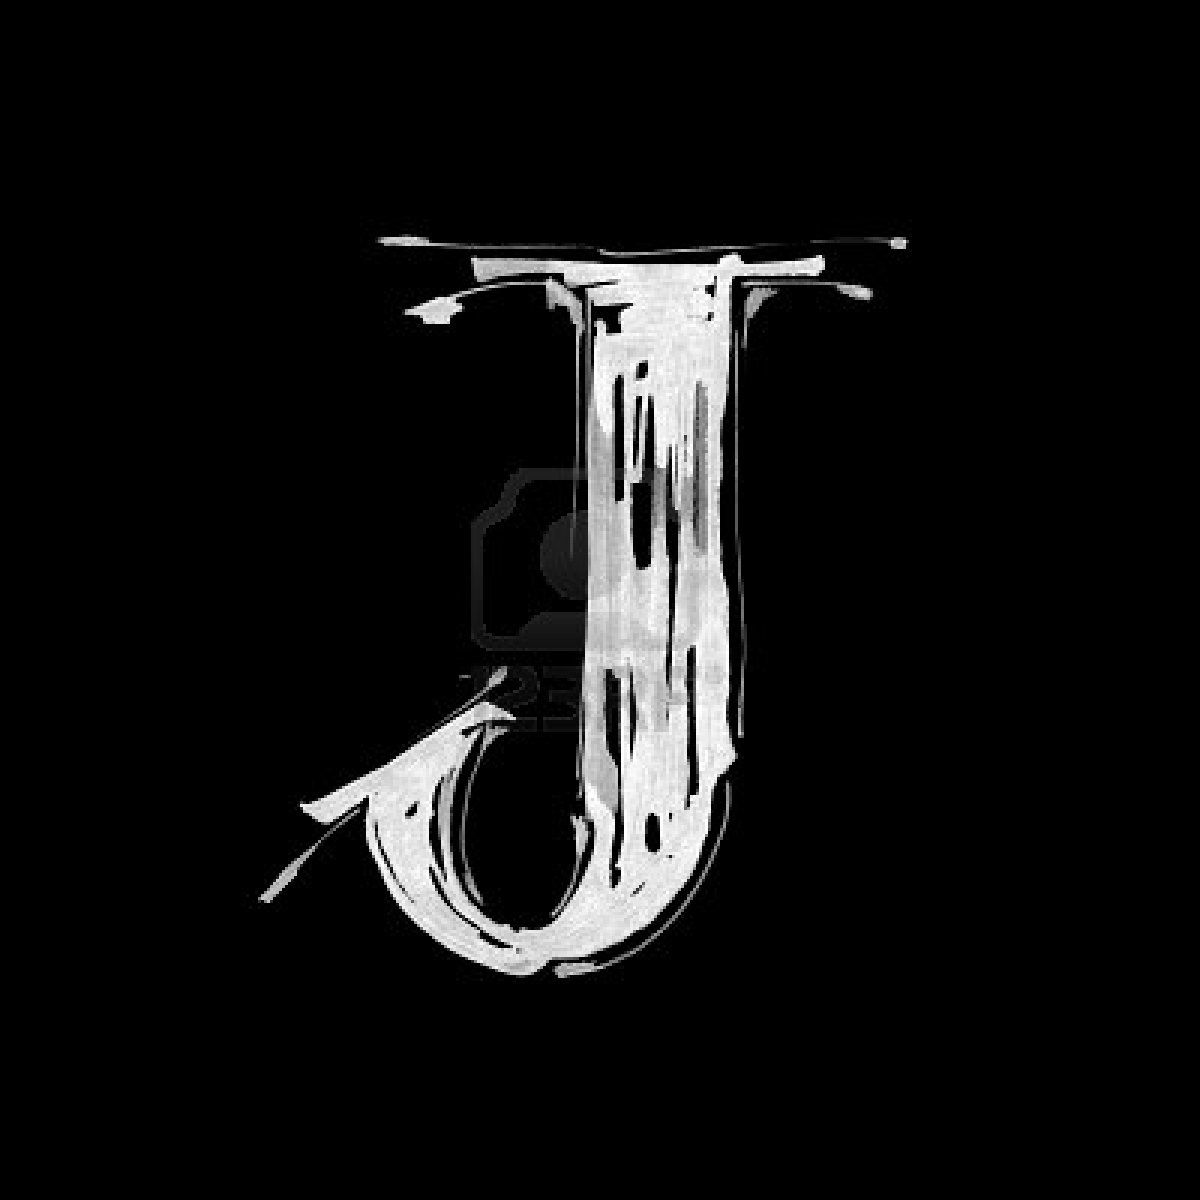 You can download J Alphabet Hd Wallpapers here J Alphabet